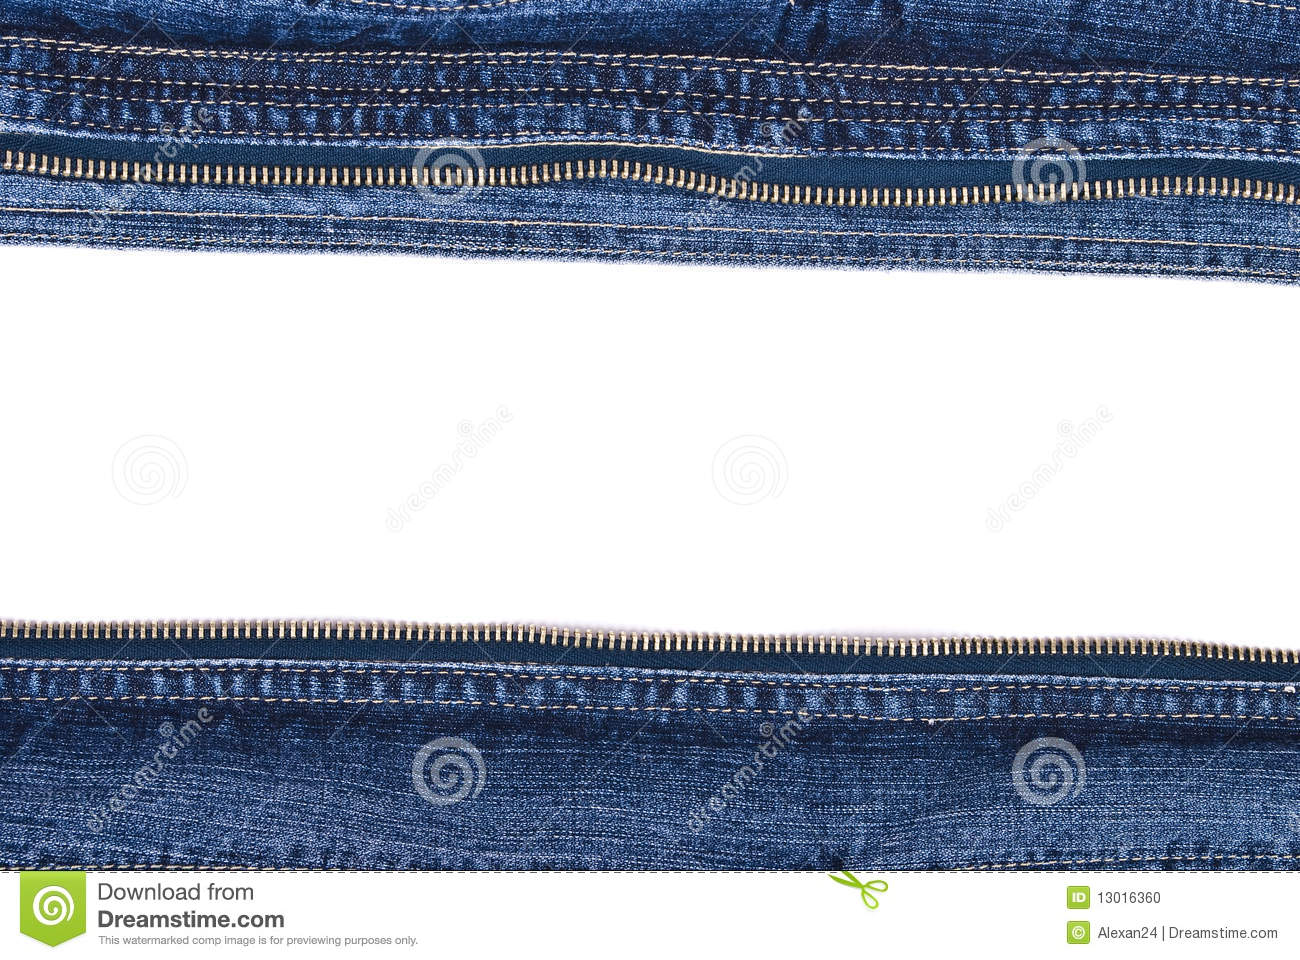 Clip Art Blue Jean Day: Jeans Border Stock Photo. Image Of Strap, Label, Fabric